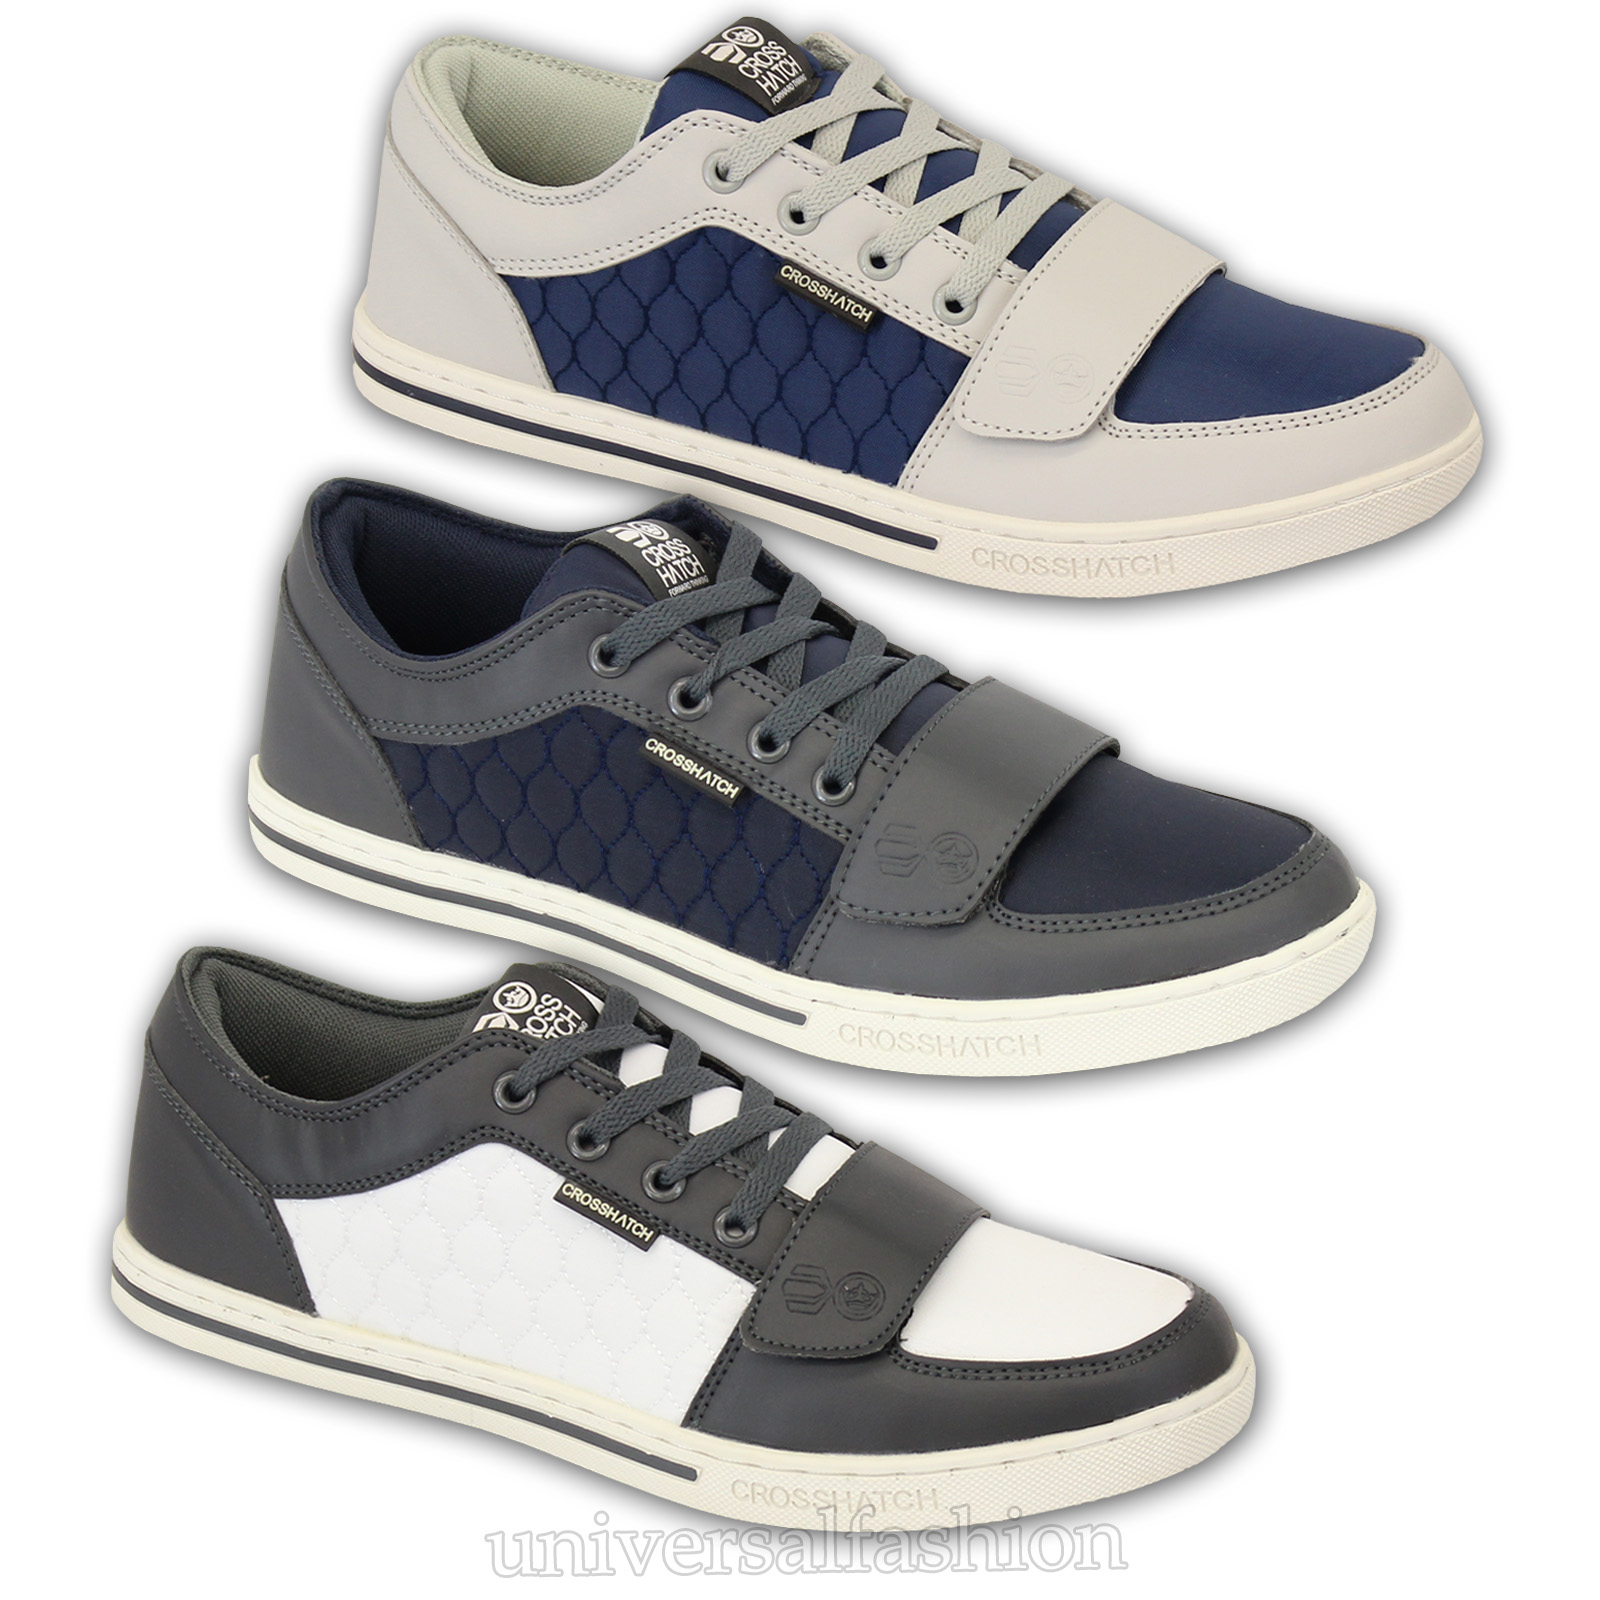 691608e19c66 Mens Trainers Crosshatch Sneakers Shoes Lace Up Quilted Running ...